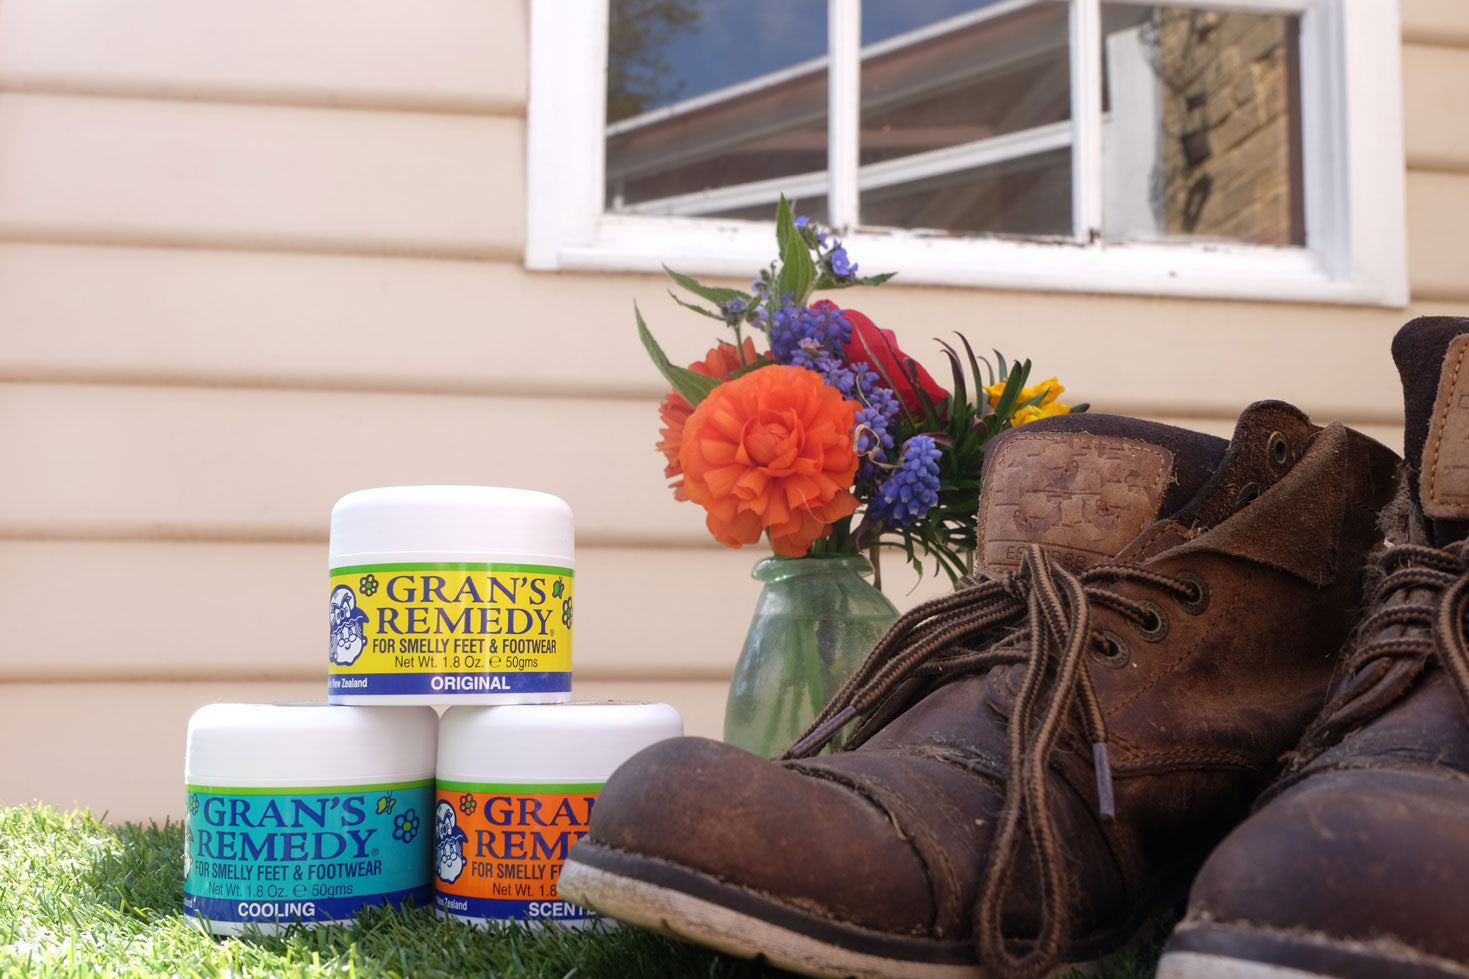 Gran's remedy treatment for smelly feet and footwear.